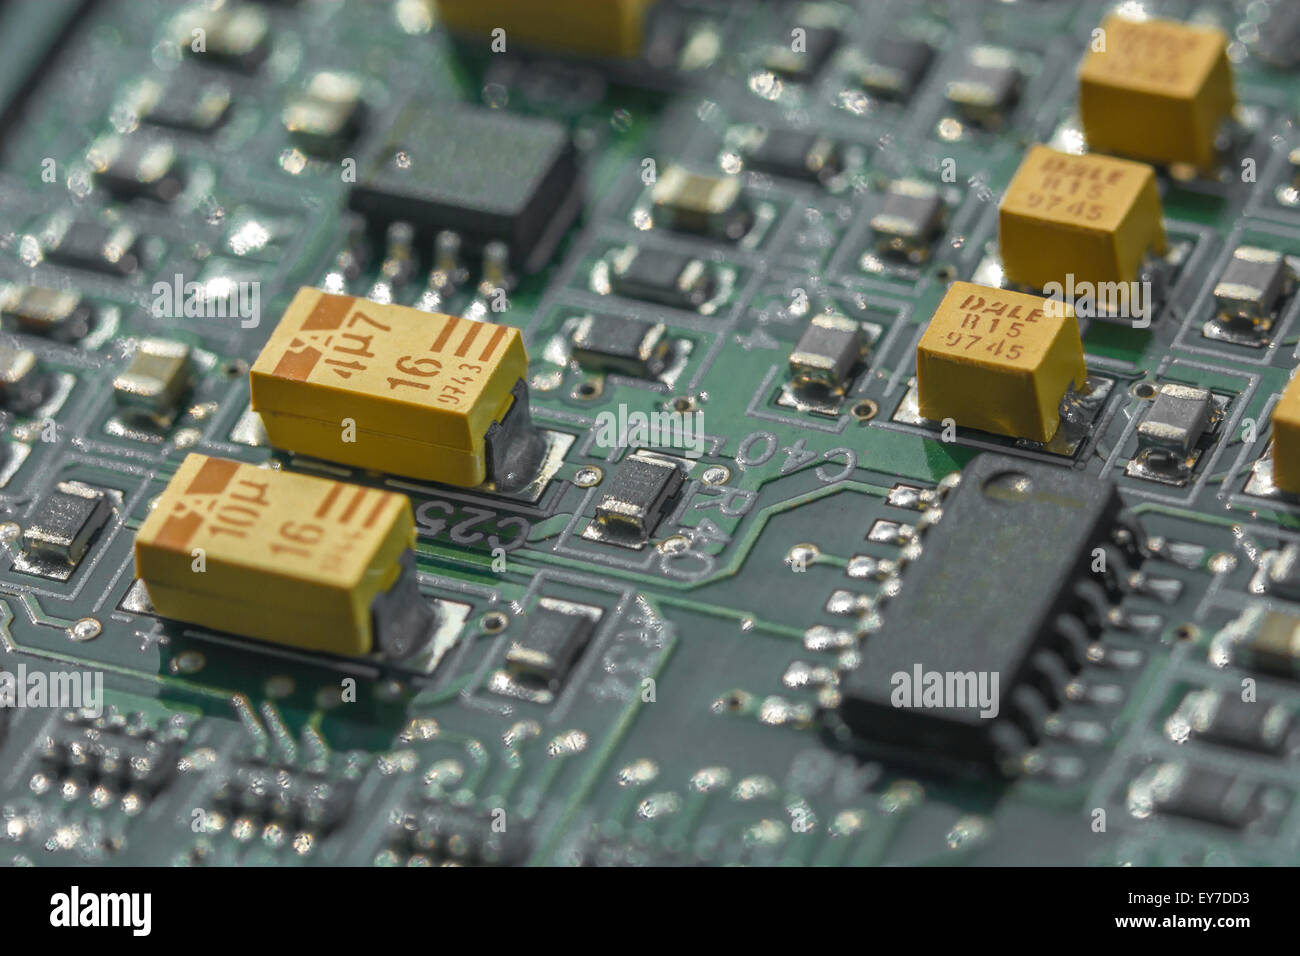 Tantalum Stock Photos Images Alamy Custom Circuit Board Pcb Printed Electronic Made Macro Photo Of Showing Yellow Rare Element